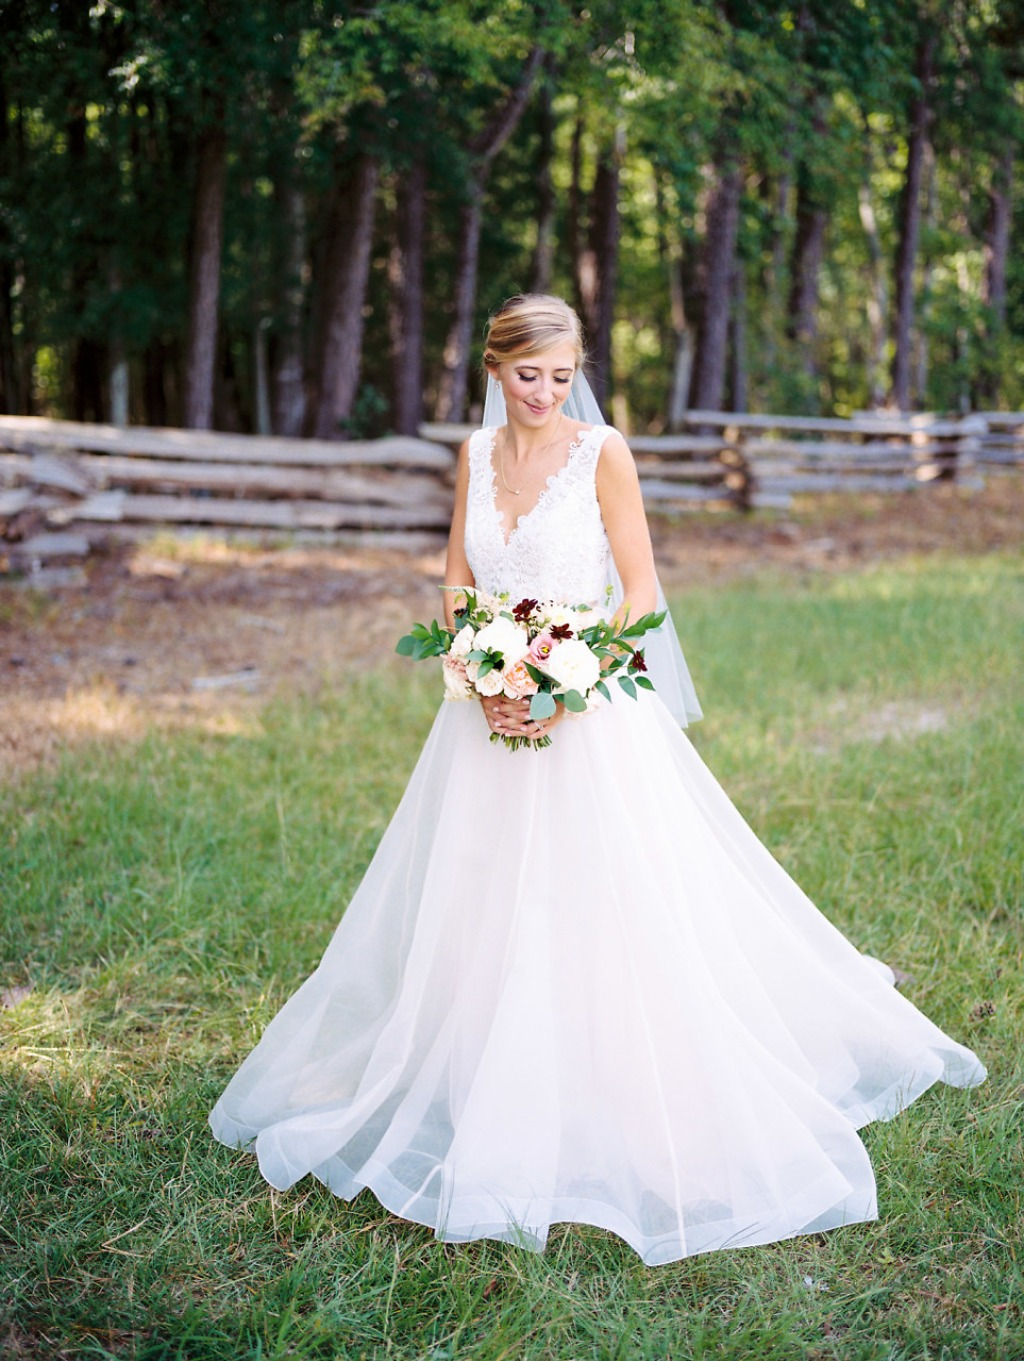 KATELIN + JOSEPH'S SPRING FARM WEDDING